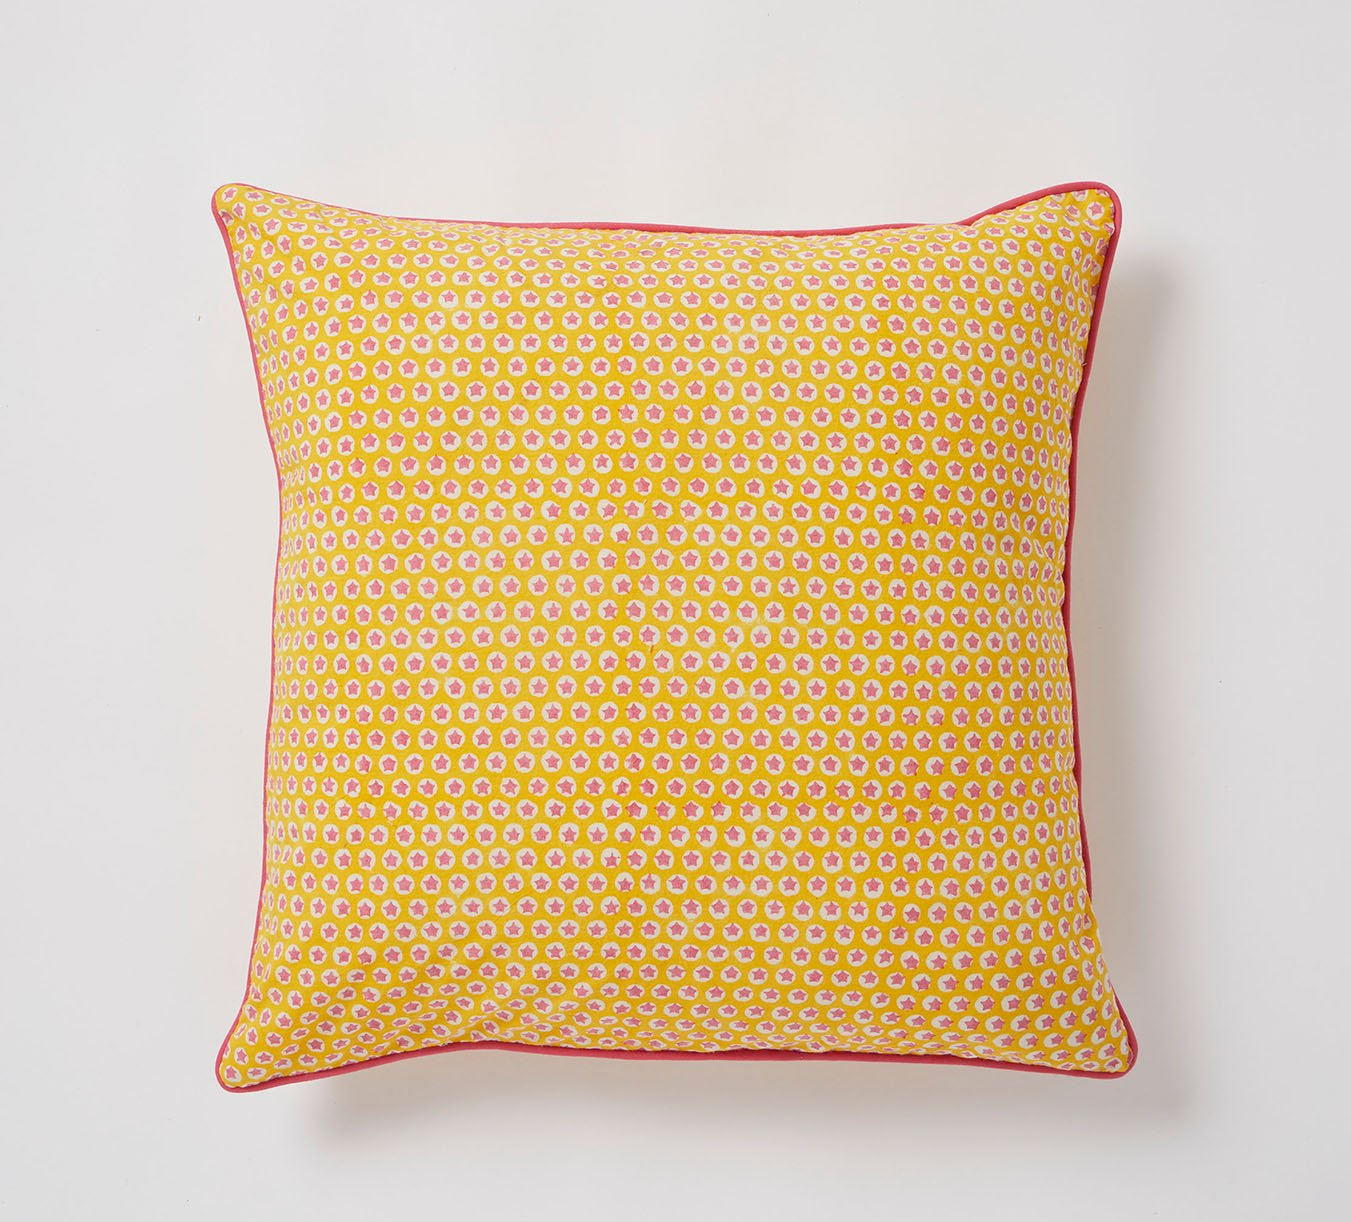 Cushion - Tuk Tuk - Piped - Yellow - 70 x 35 cm